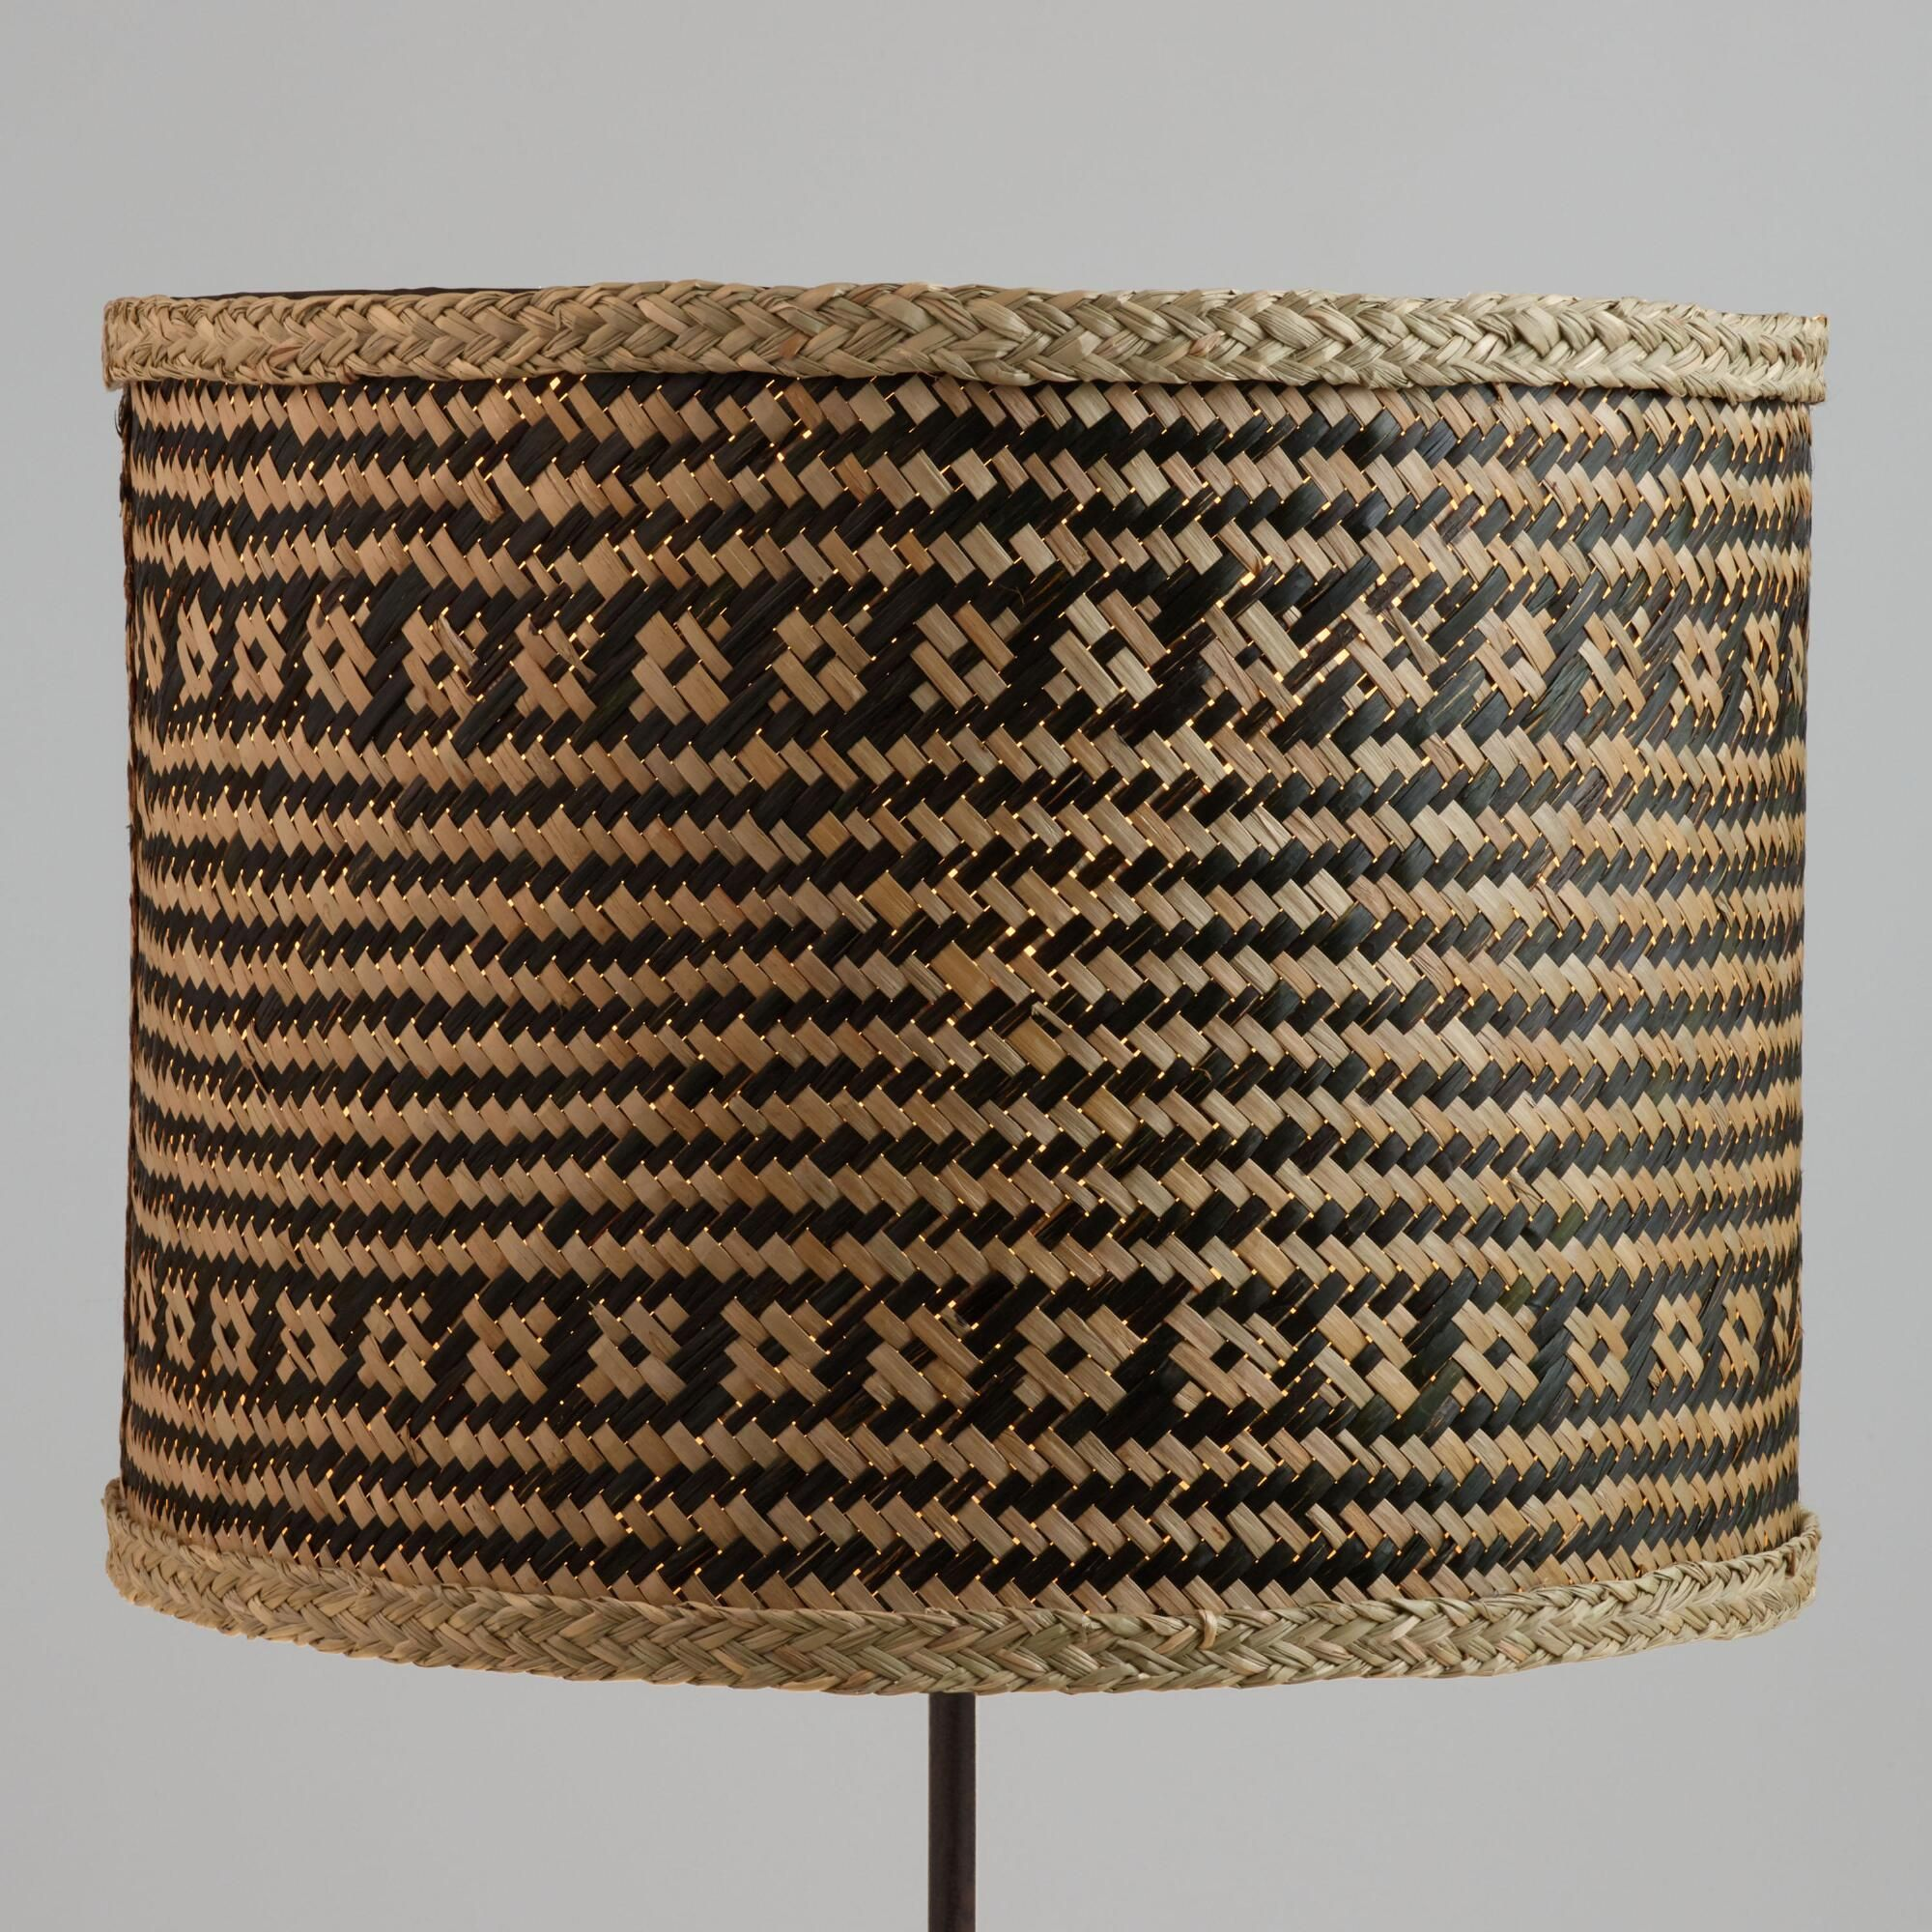 Twine Wrapped Table Lamp Shade With Images Lamp Shade Table Lamp Shades Shabby Chic Lamp